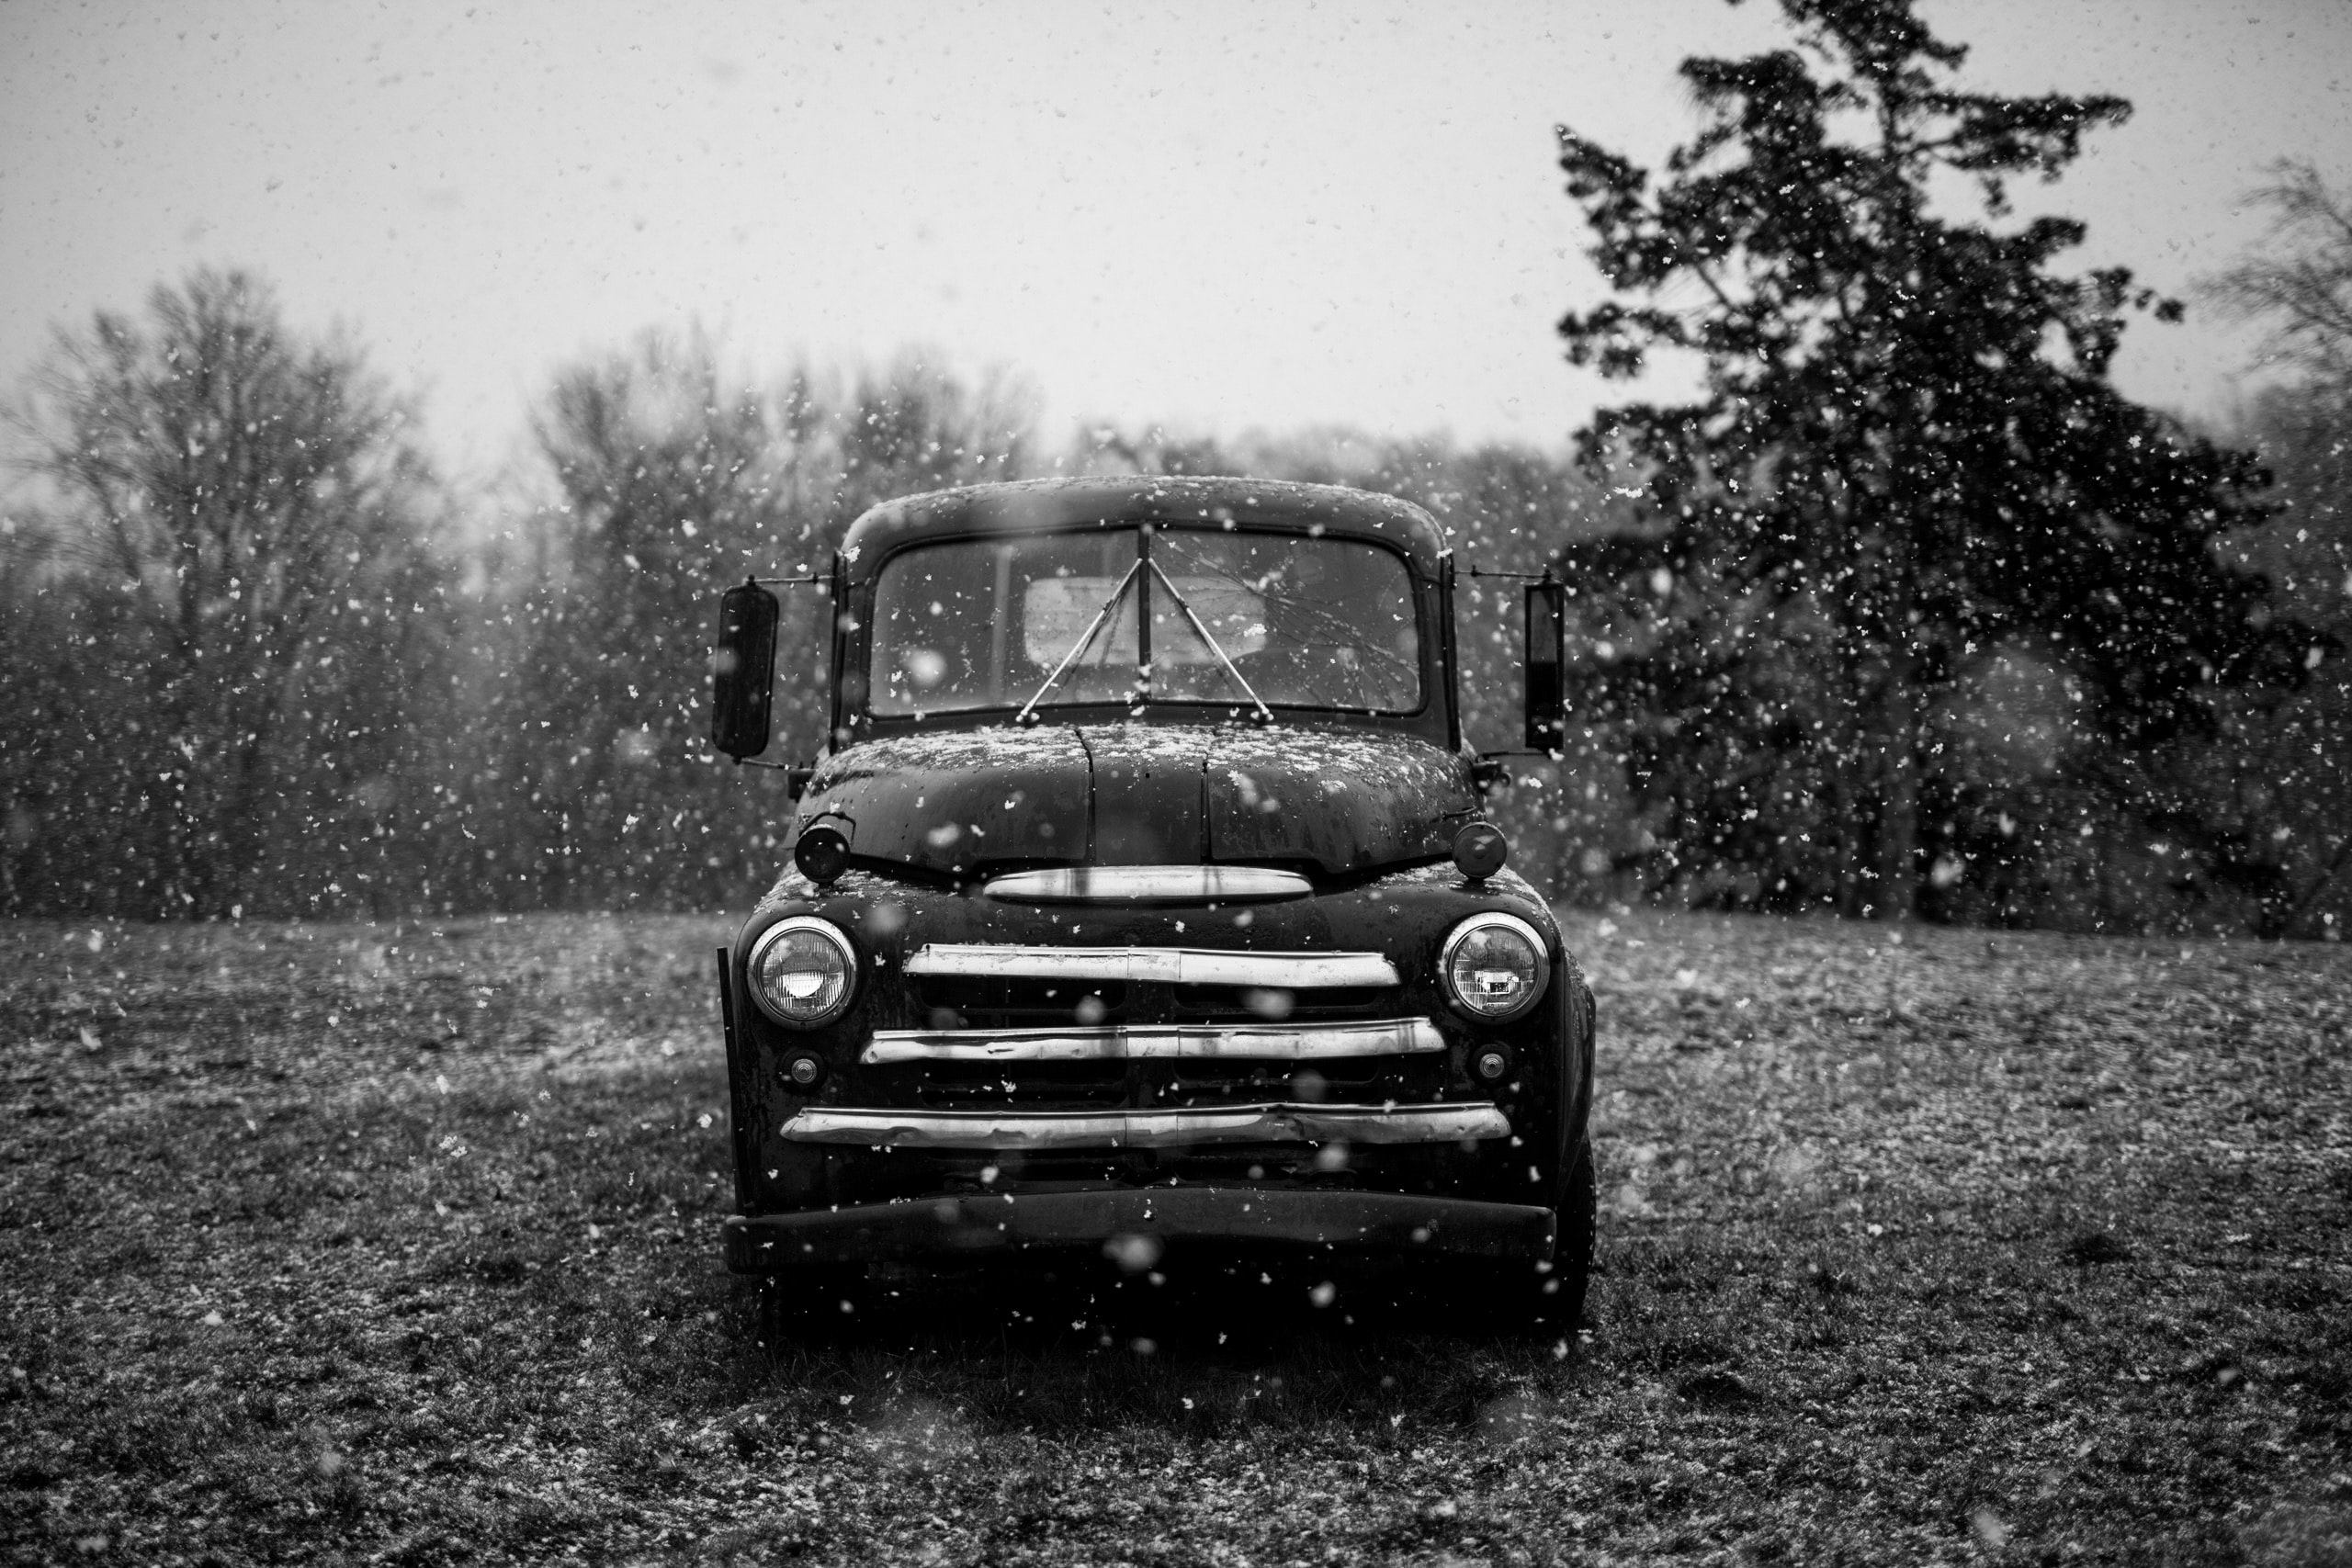 grayscale timelapse photography of classic vehicle on rainy season